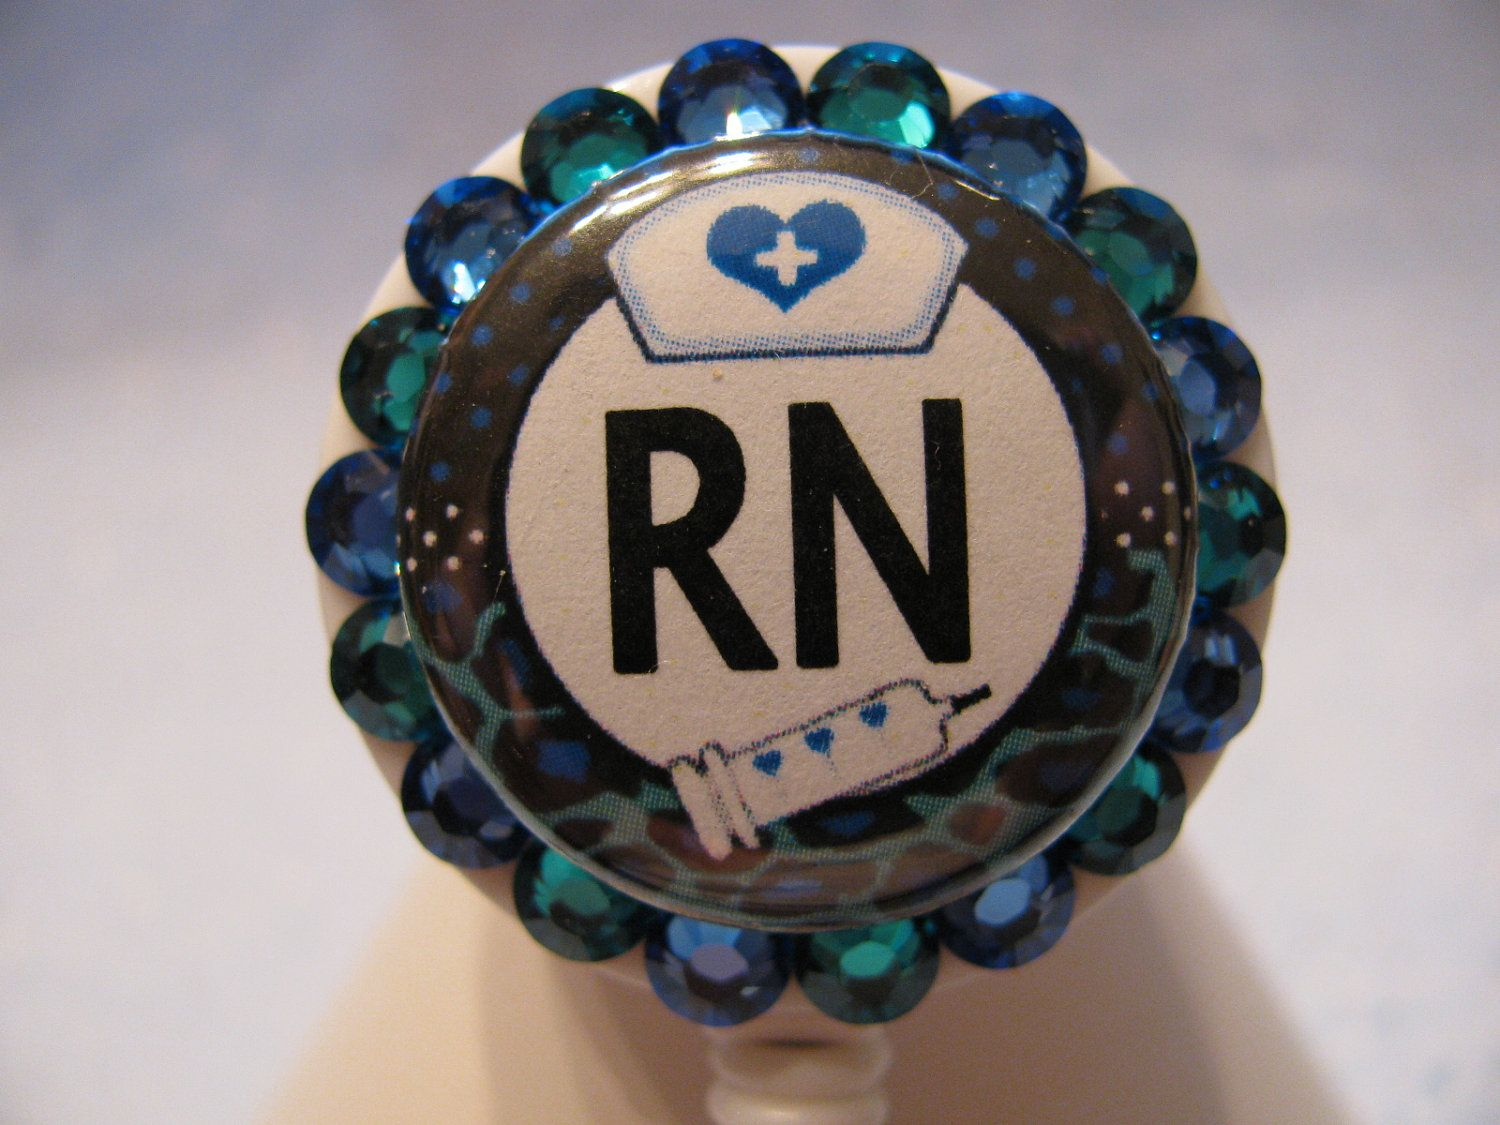 RN Nurse Swarovski Crystal Bling ID Badge Holder Retractable Reel Customizable ID Name Tag Holder. $11.00, via Etsy.